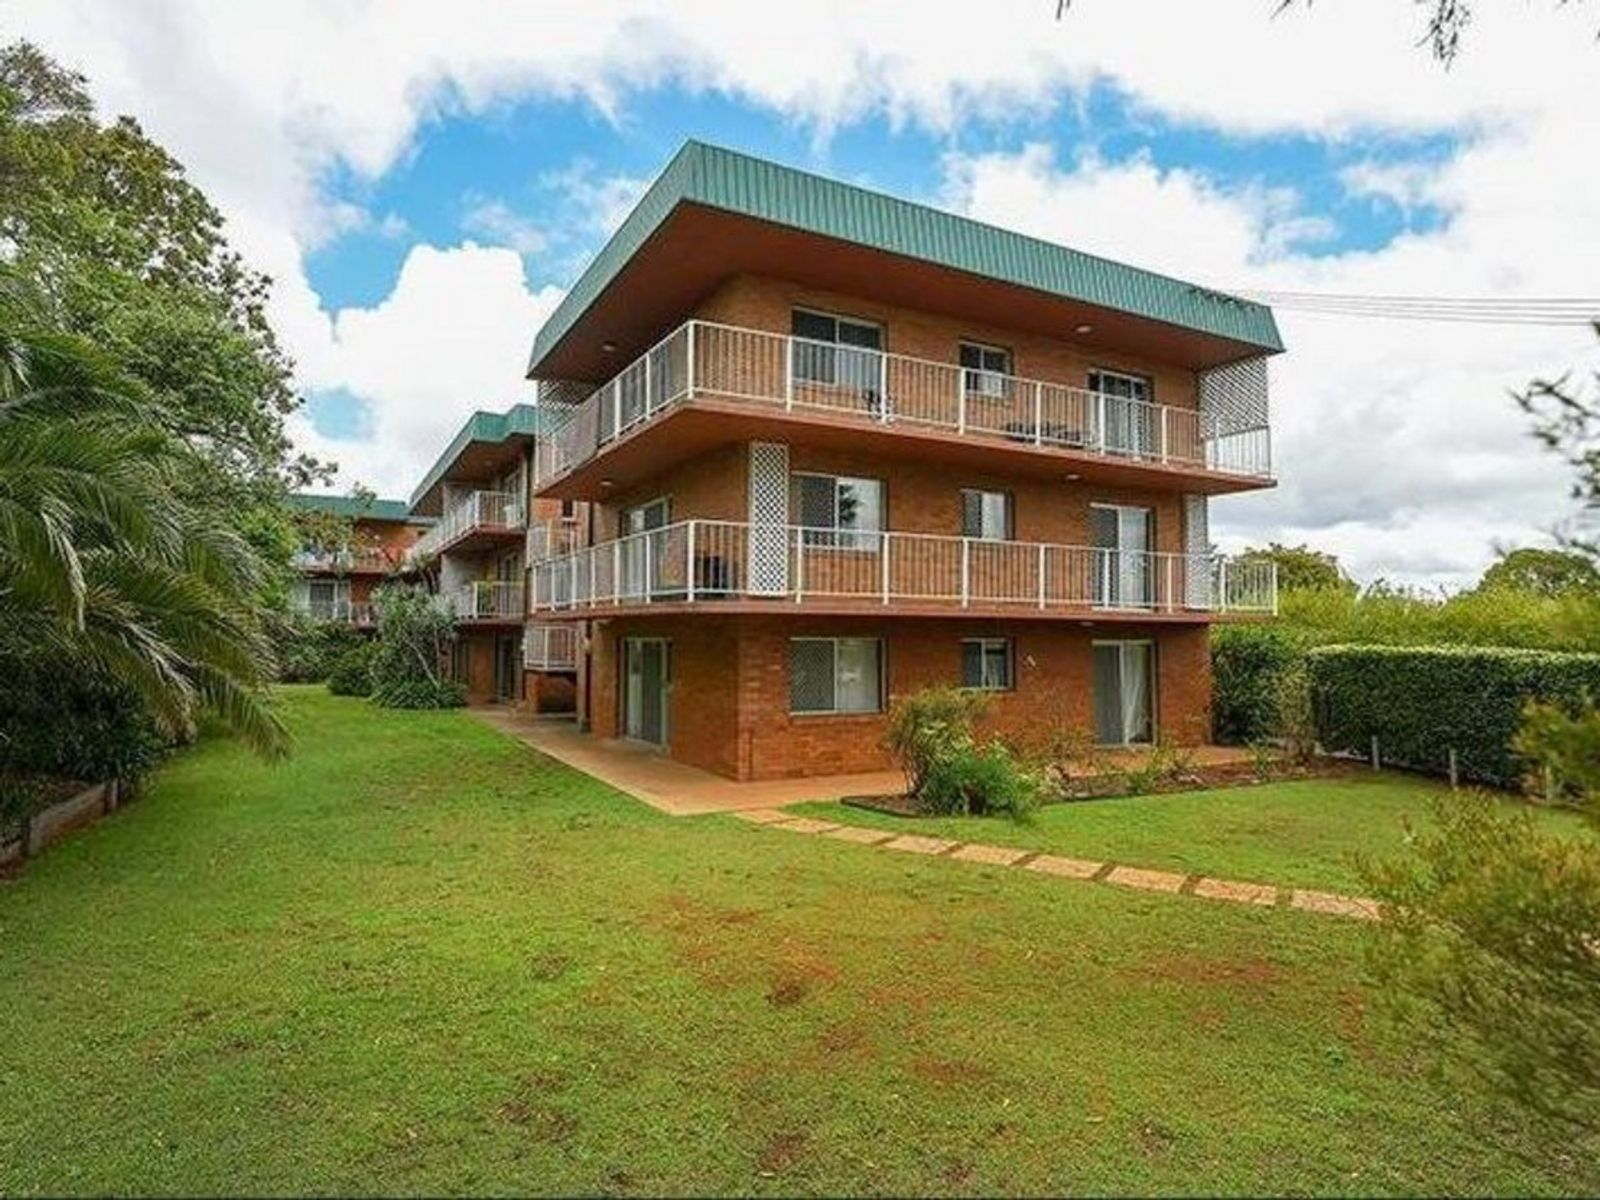 13/6 Scott Street, East Toowoomba, QLD 4350